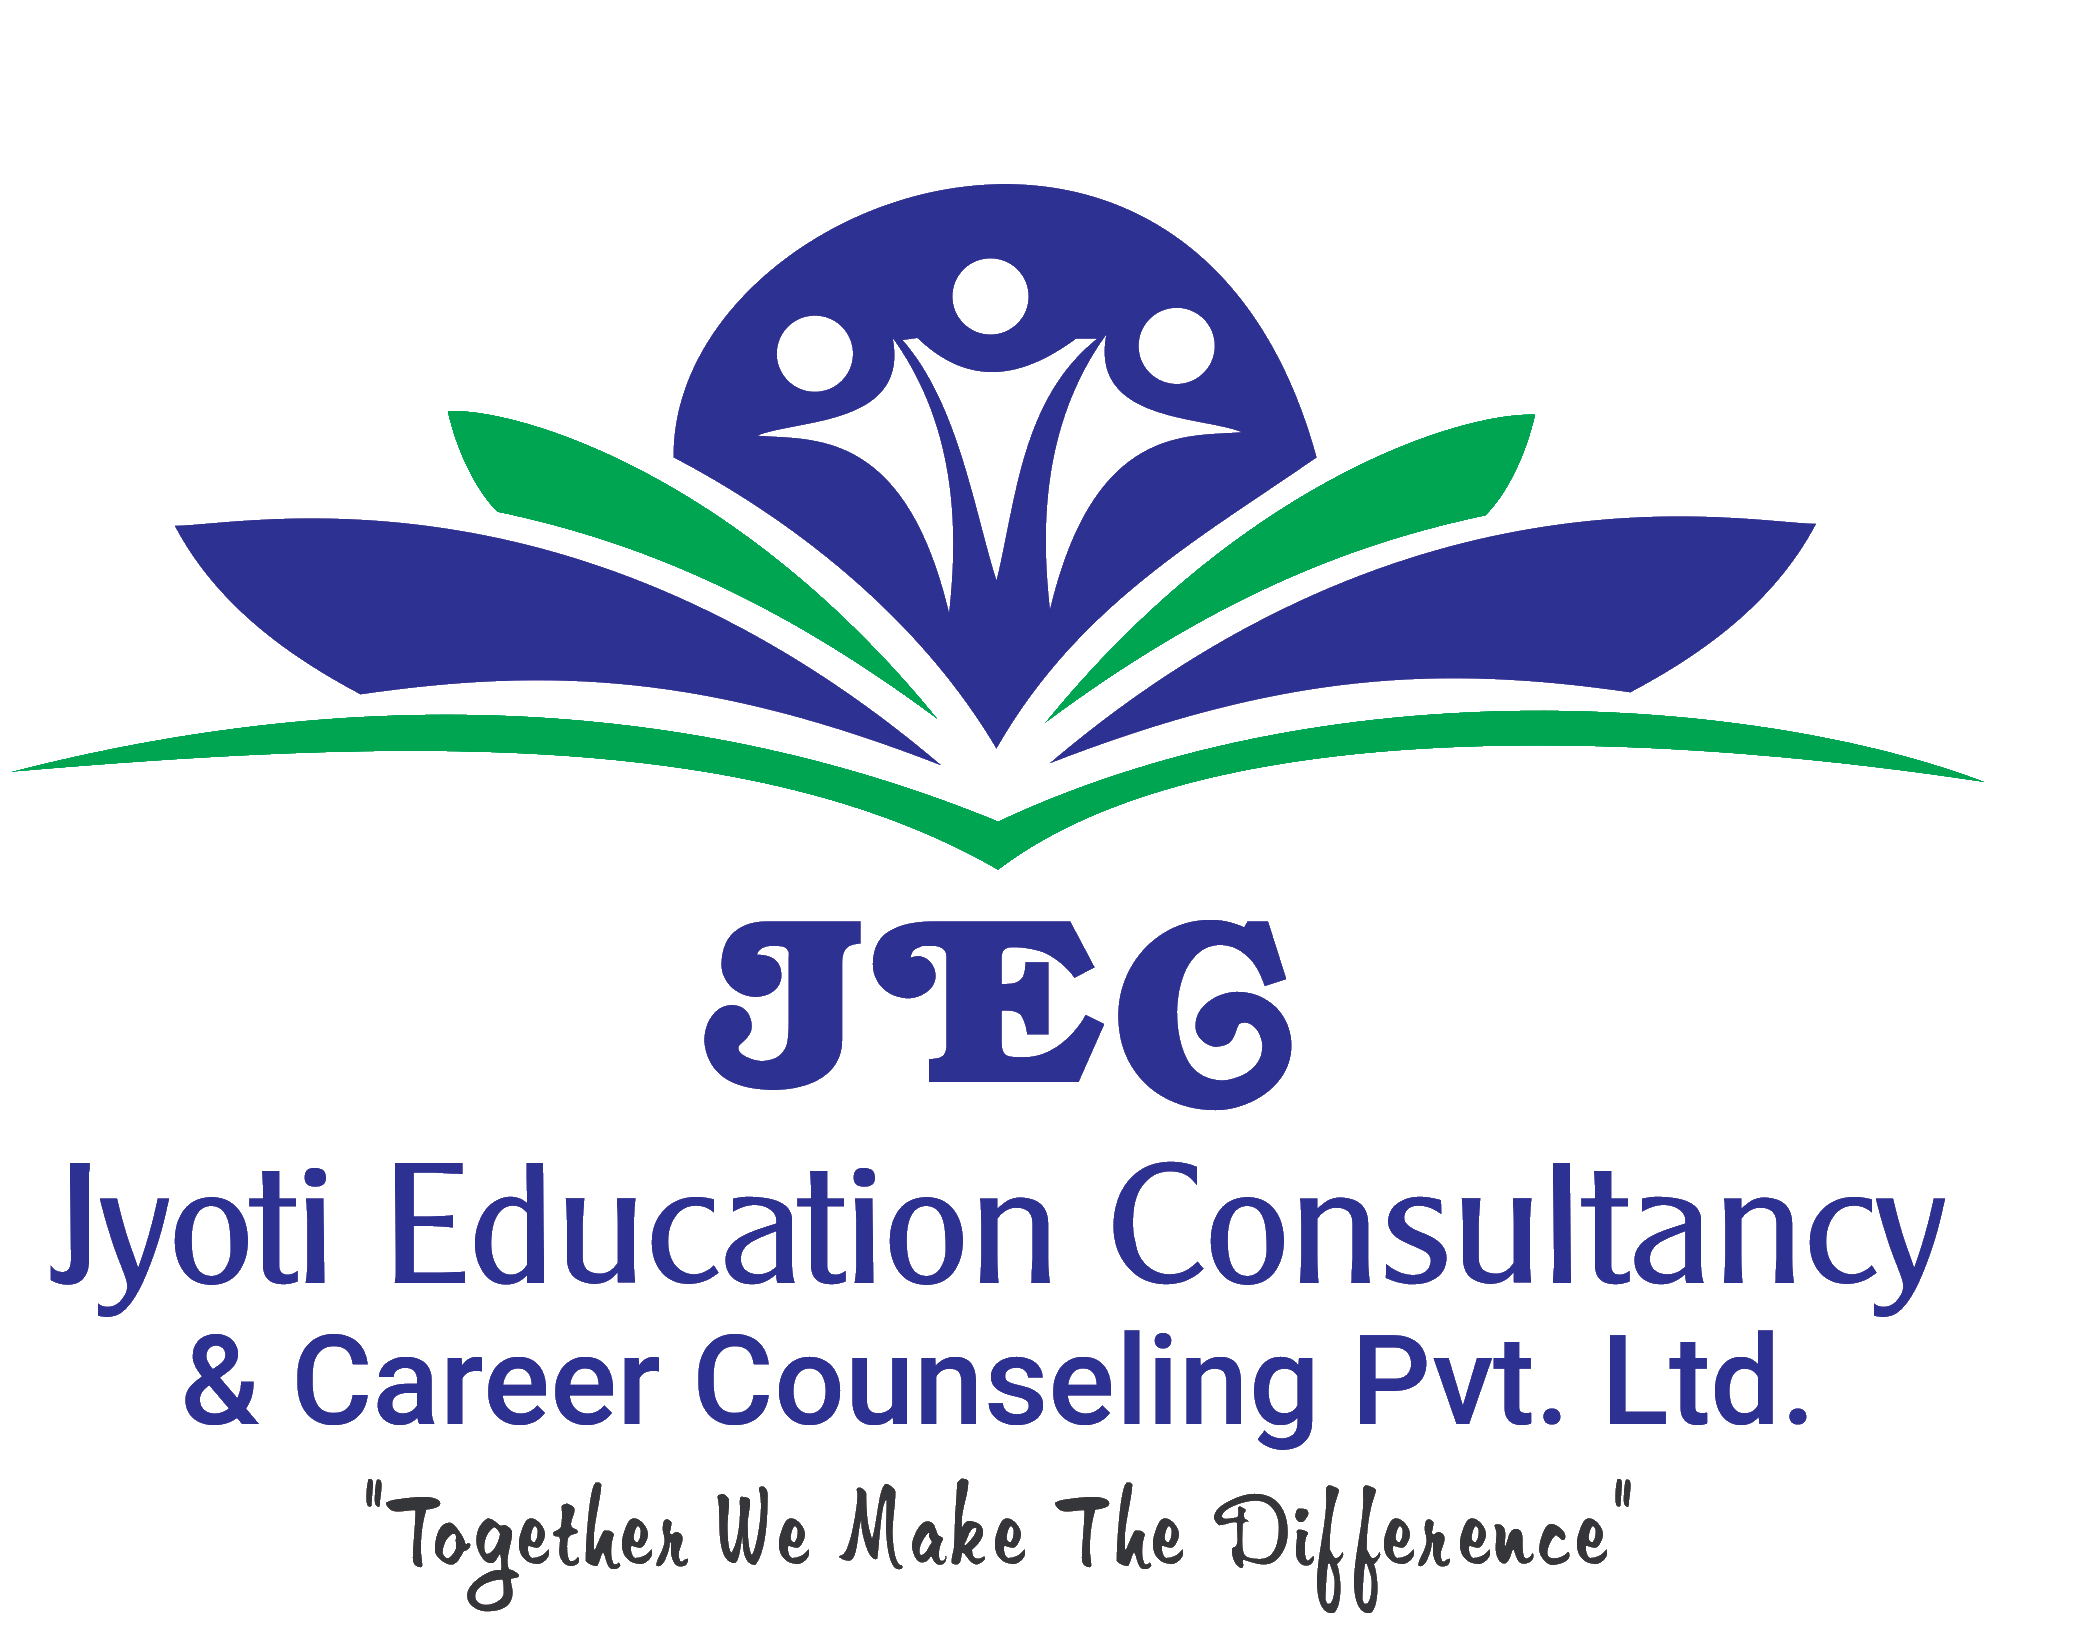 Jyoti Education